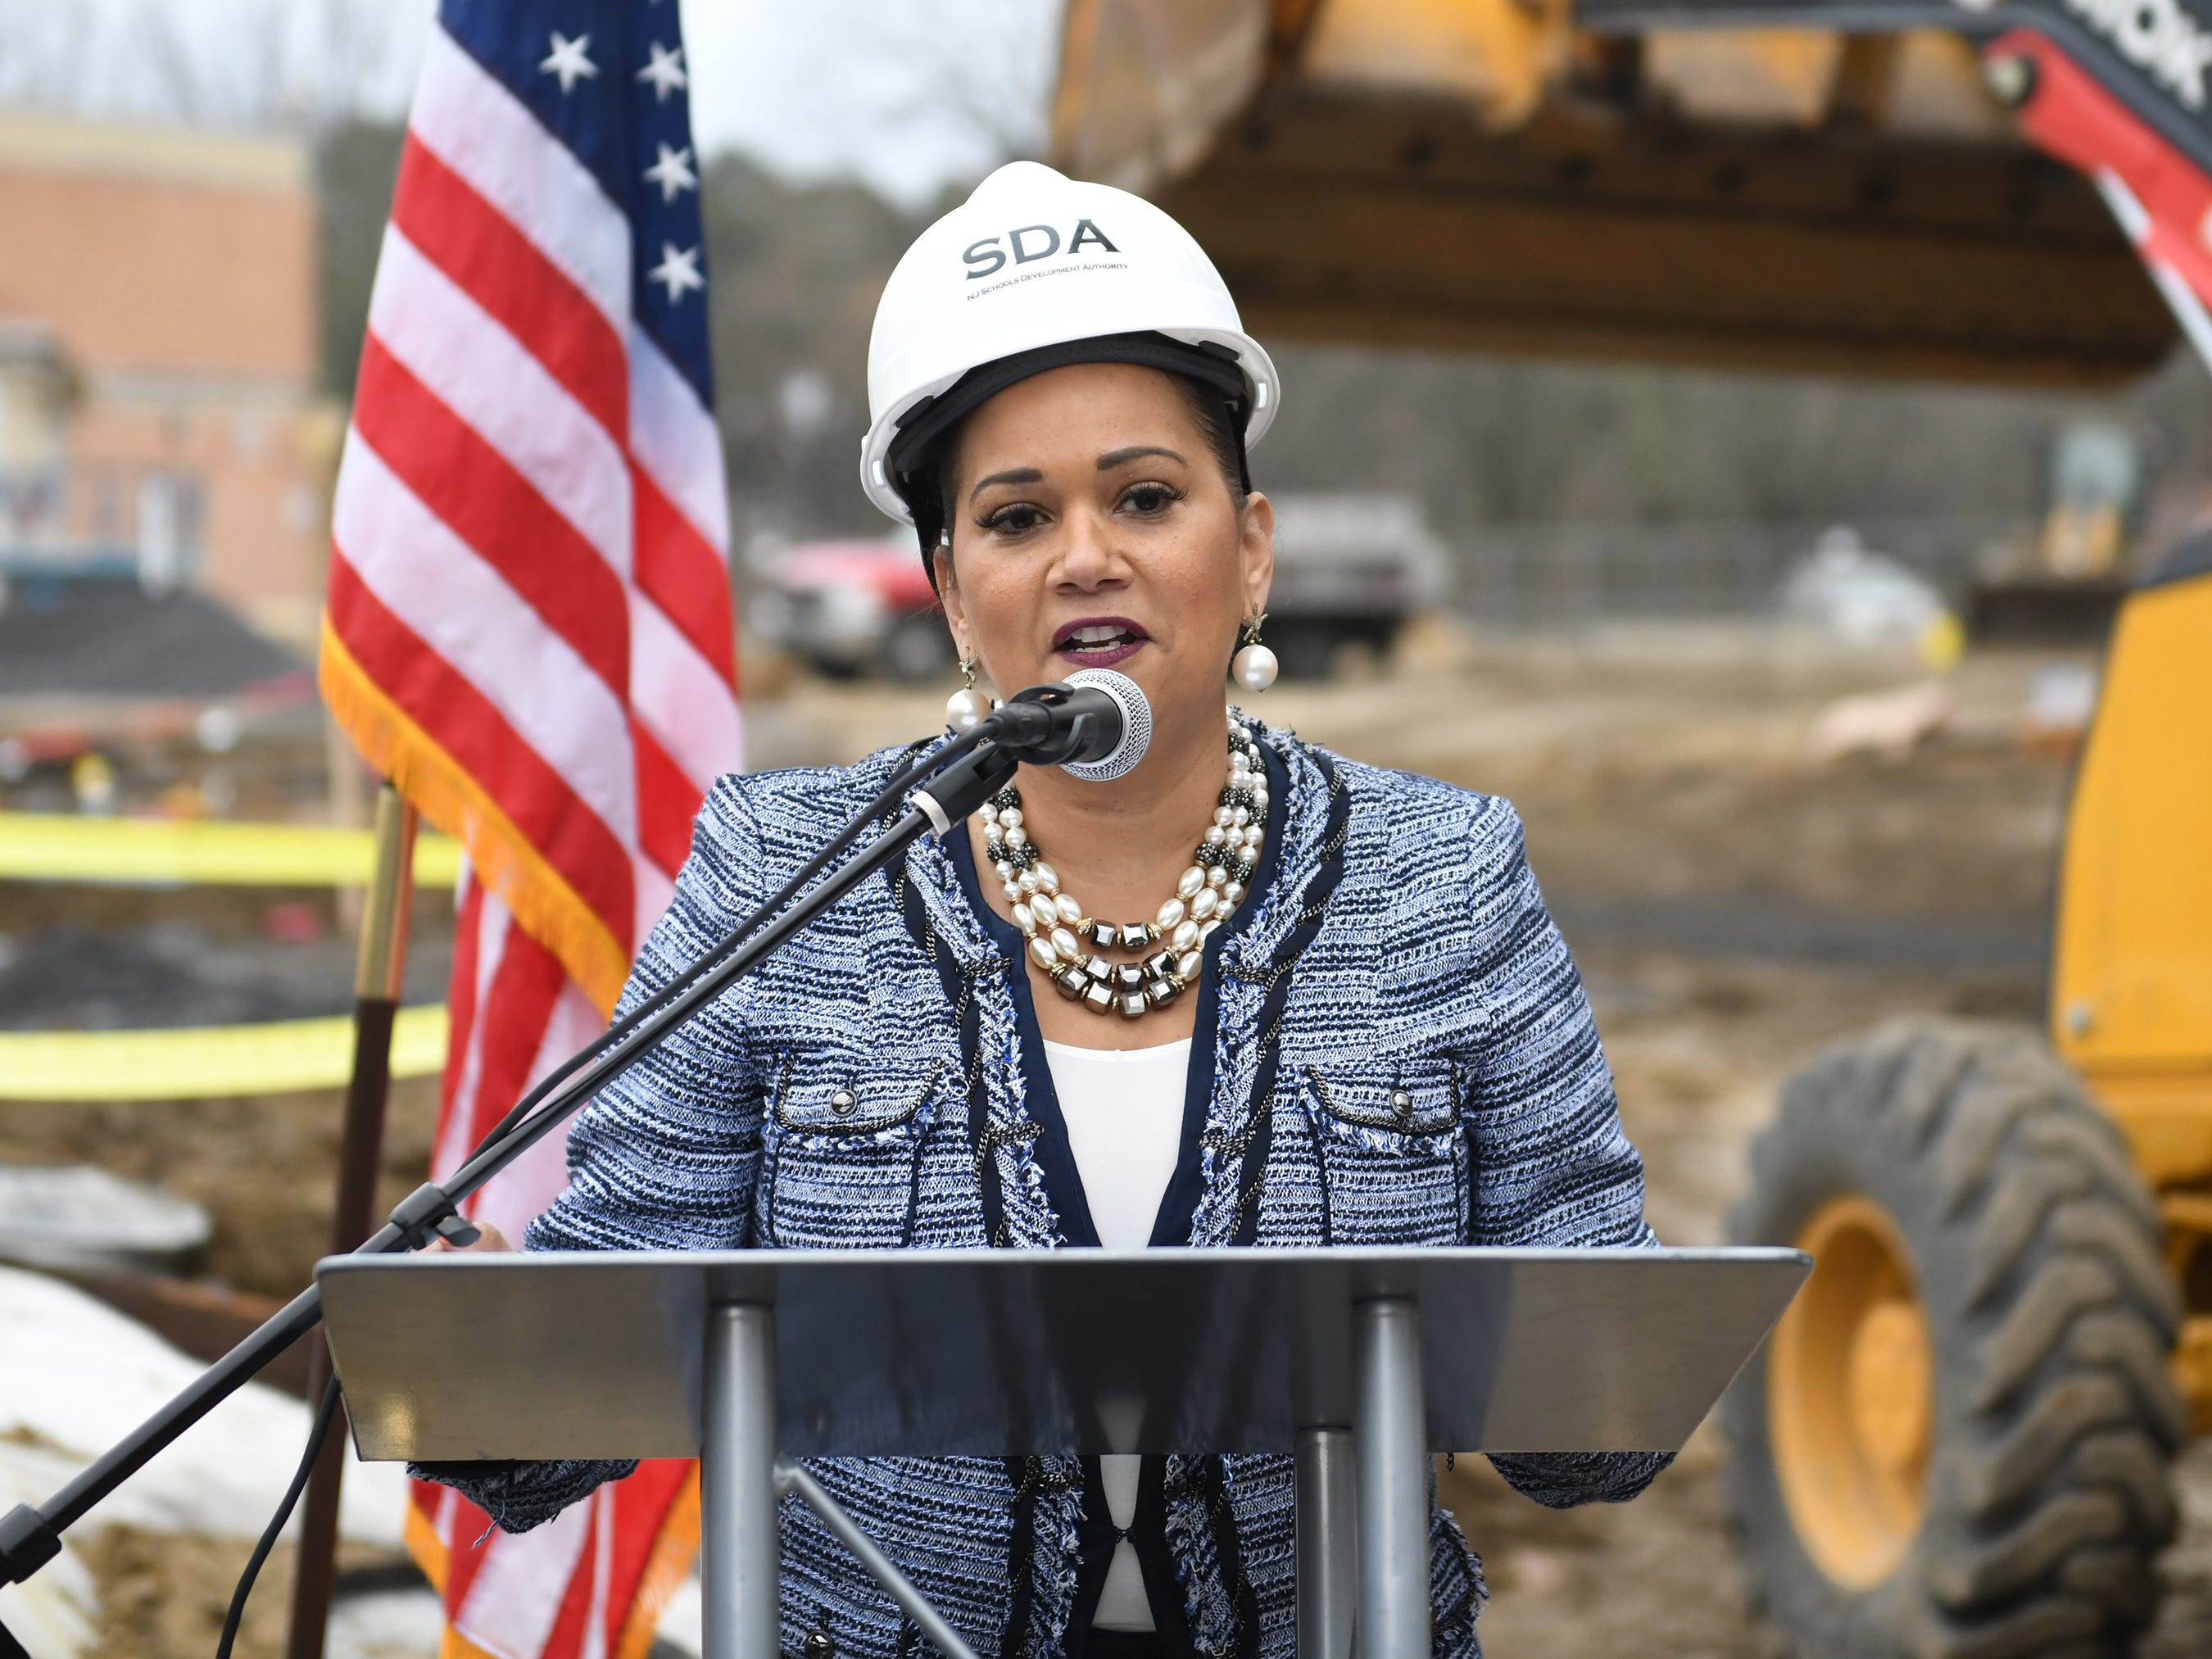 Lizette Delgado, CEO of the New Jersey Schools Development Authority, speaks during the groundbreaking ceremony at Millville High School on Thursday, Feb. 7, 2019.